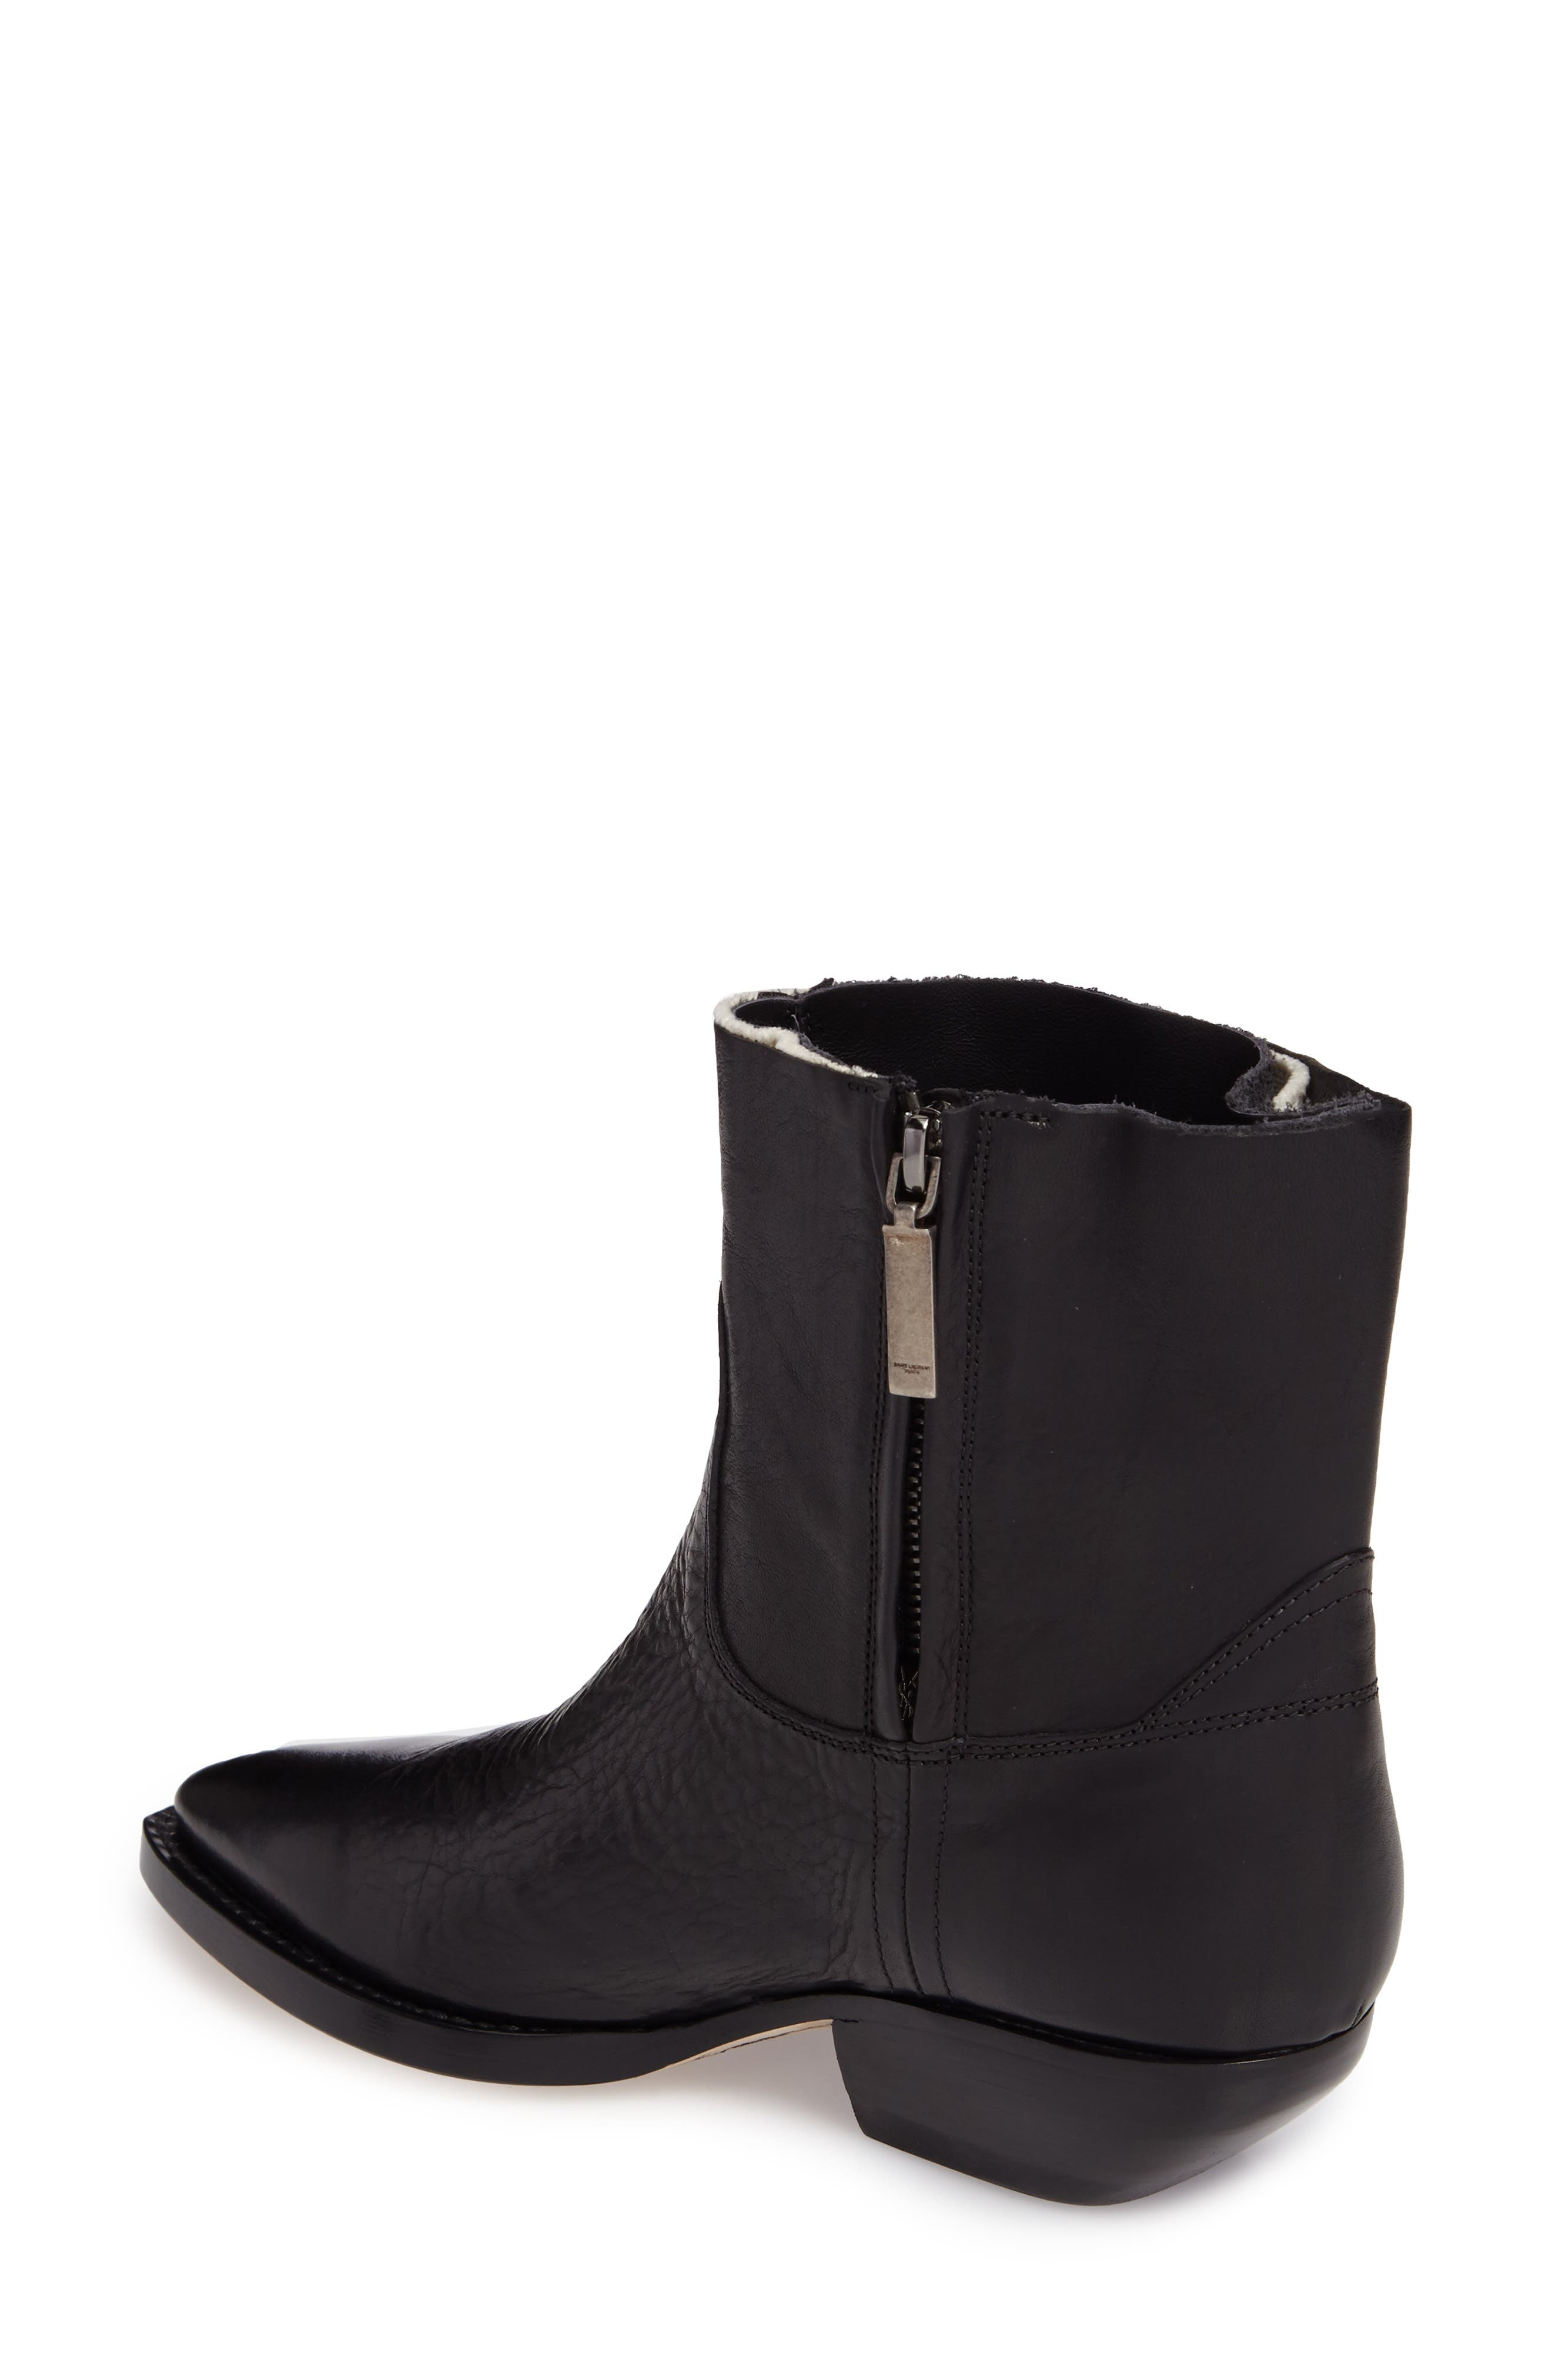 Theo Eli Western Bootie,                             Alternate thumbnail 2, color,                             Black